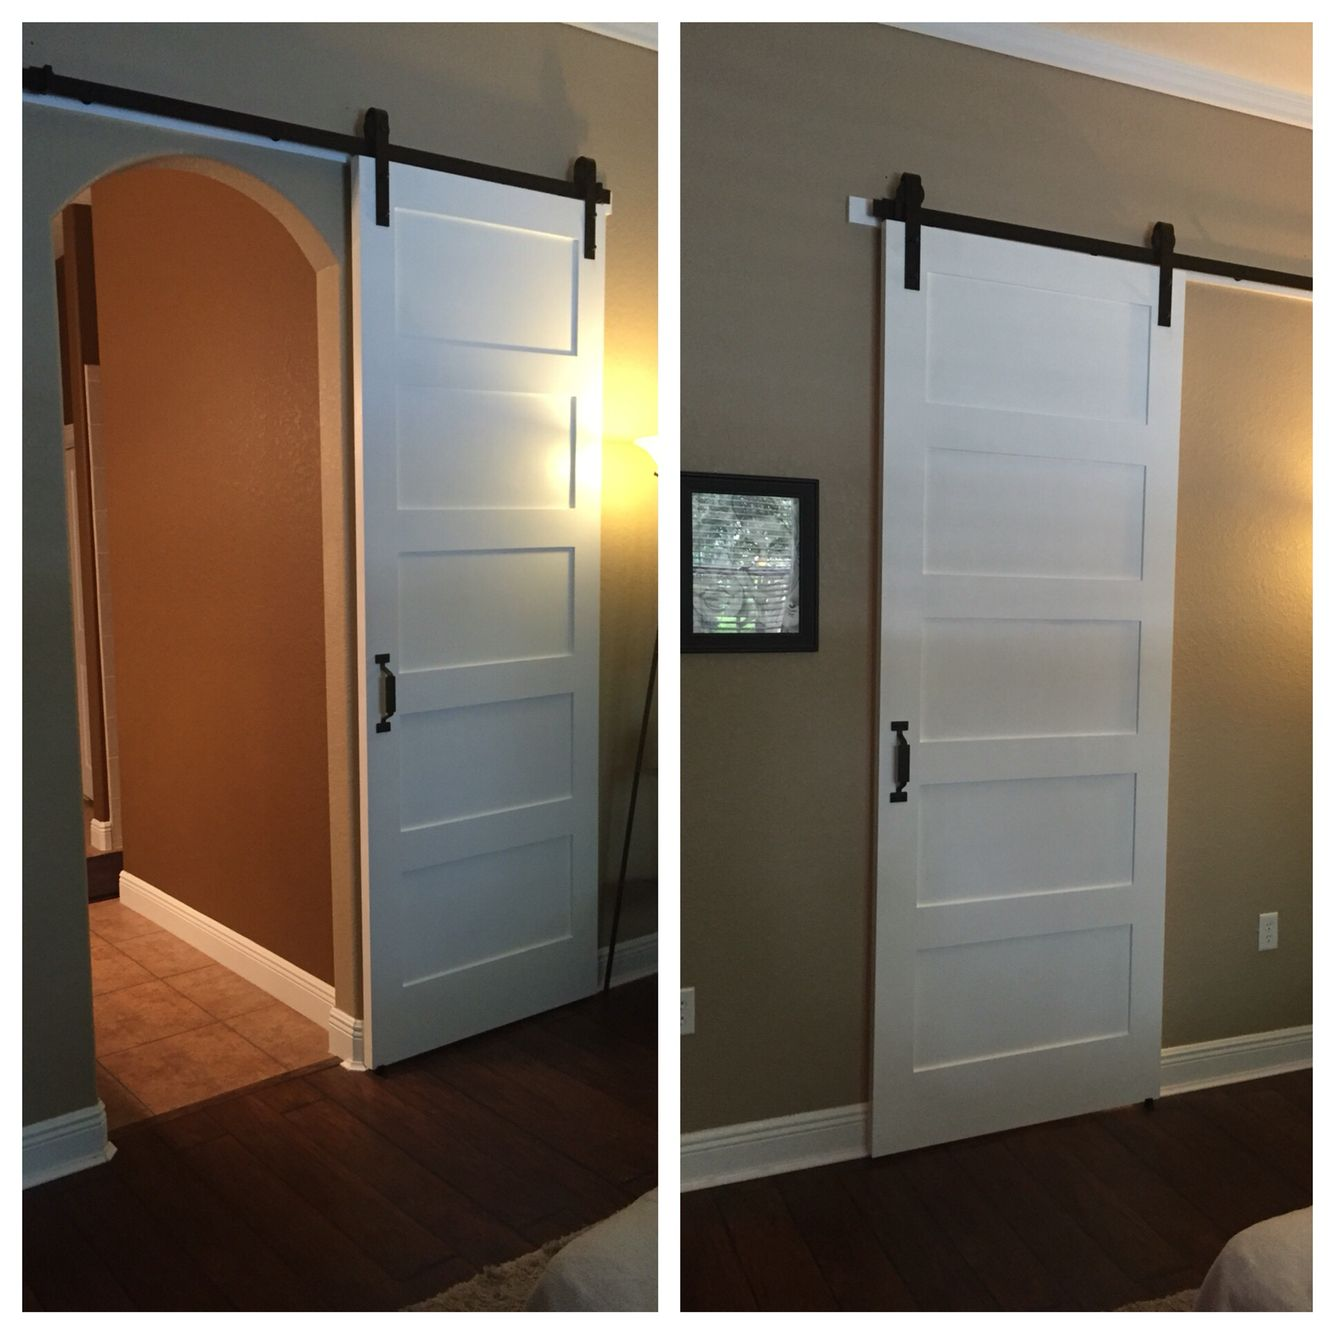 Barn door over arched opening for the home pinterest barn modern barn door for arched doorway door httphomedepot eventelaan Images